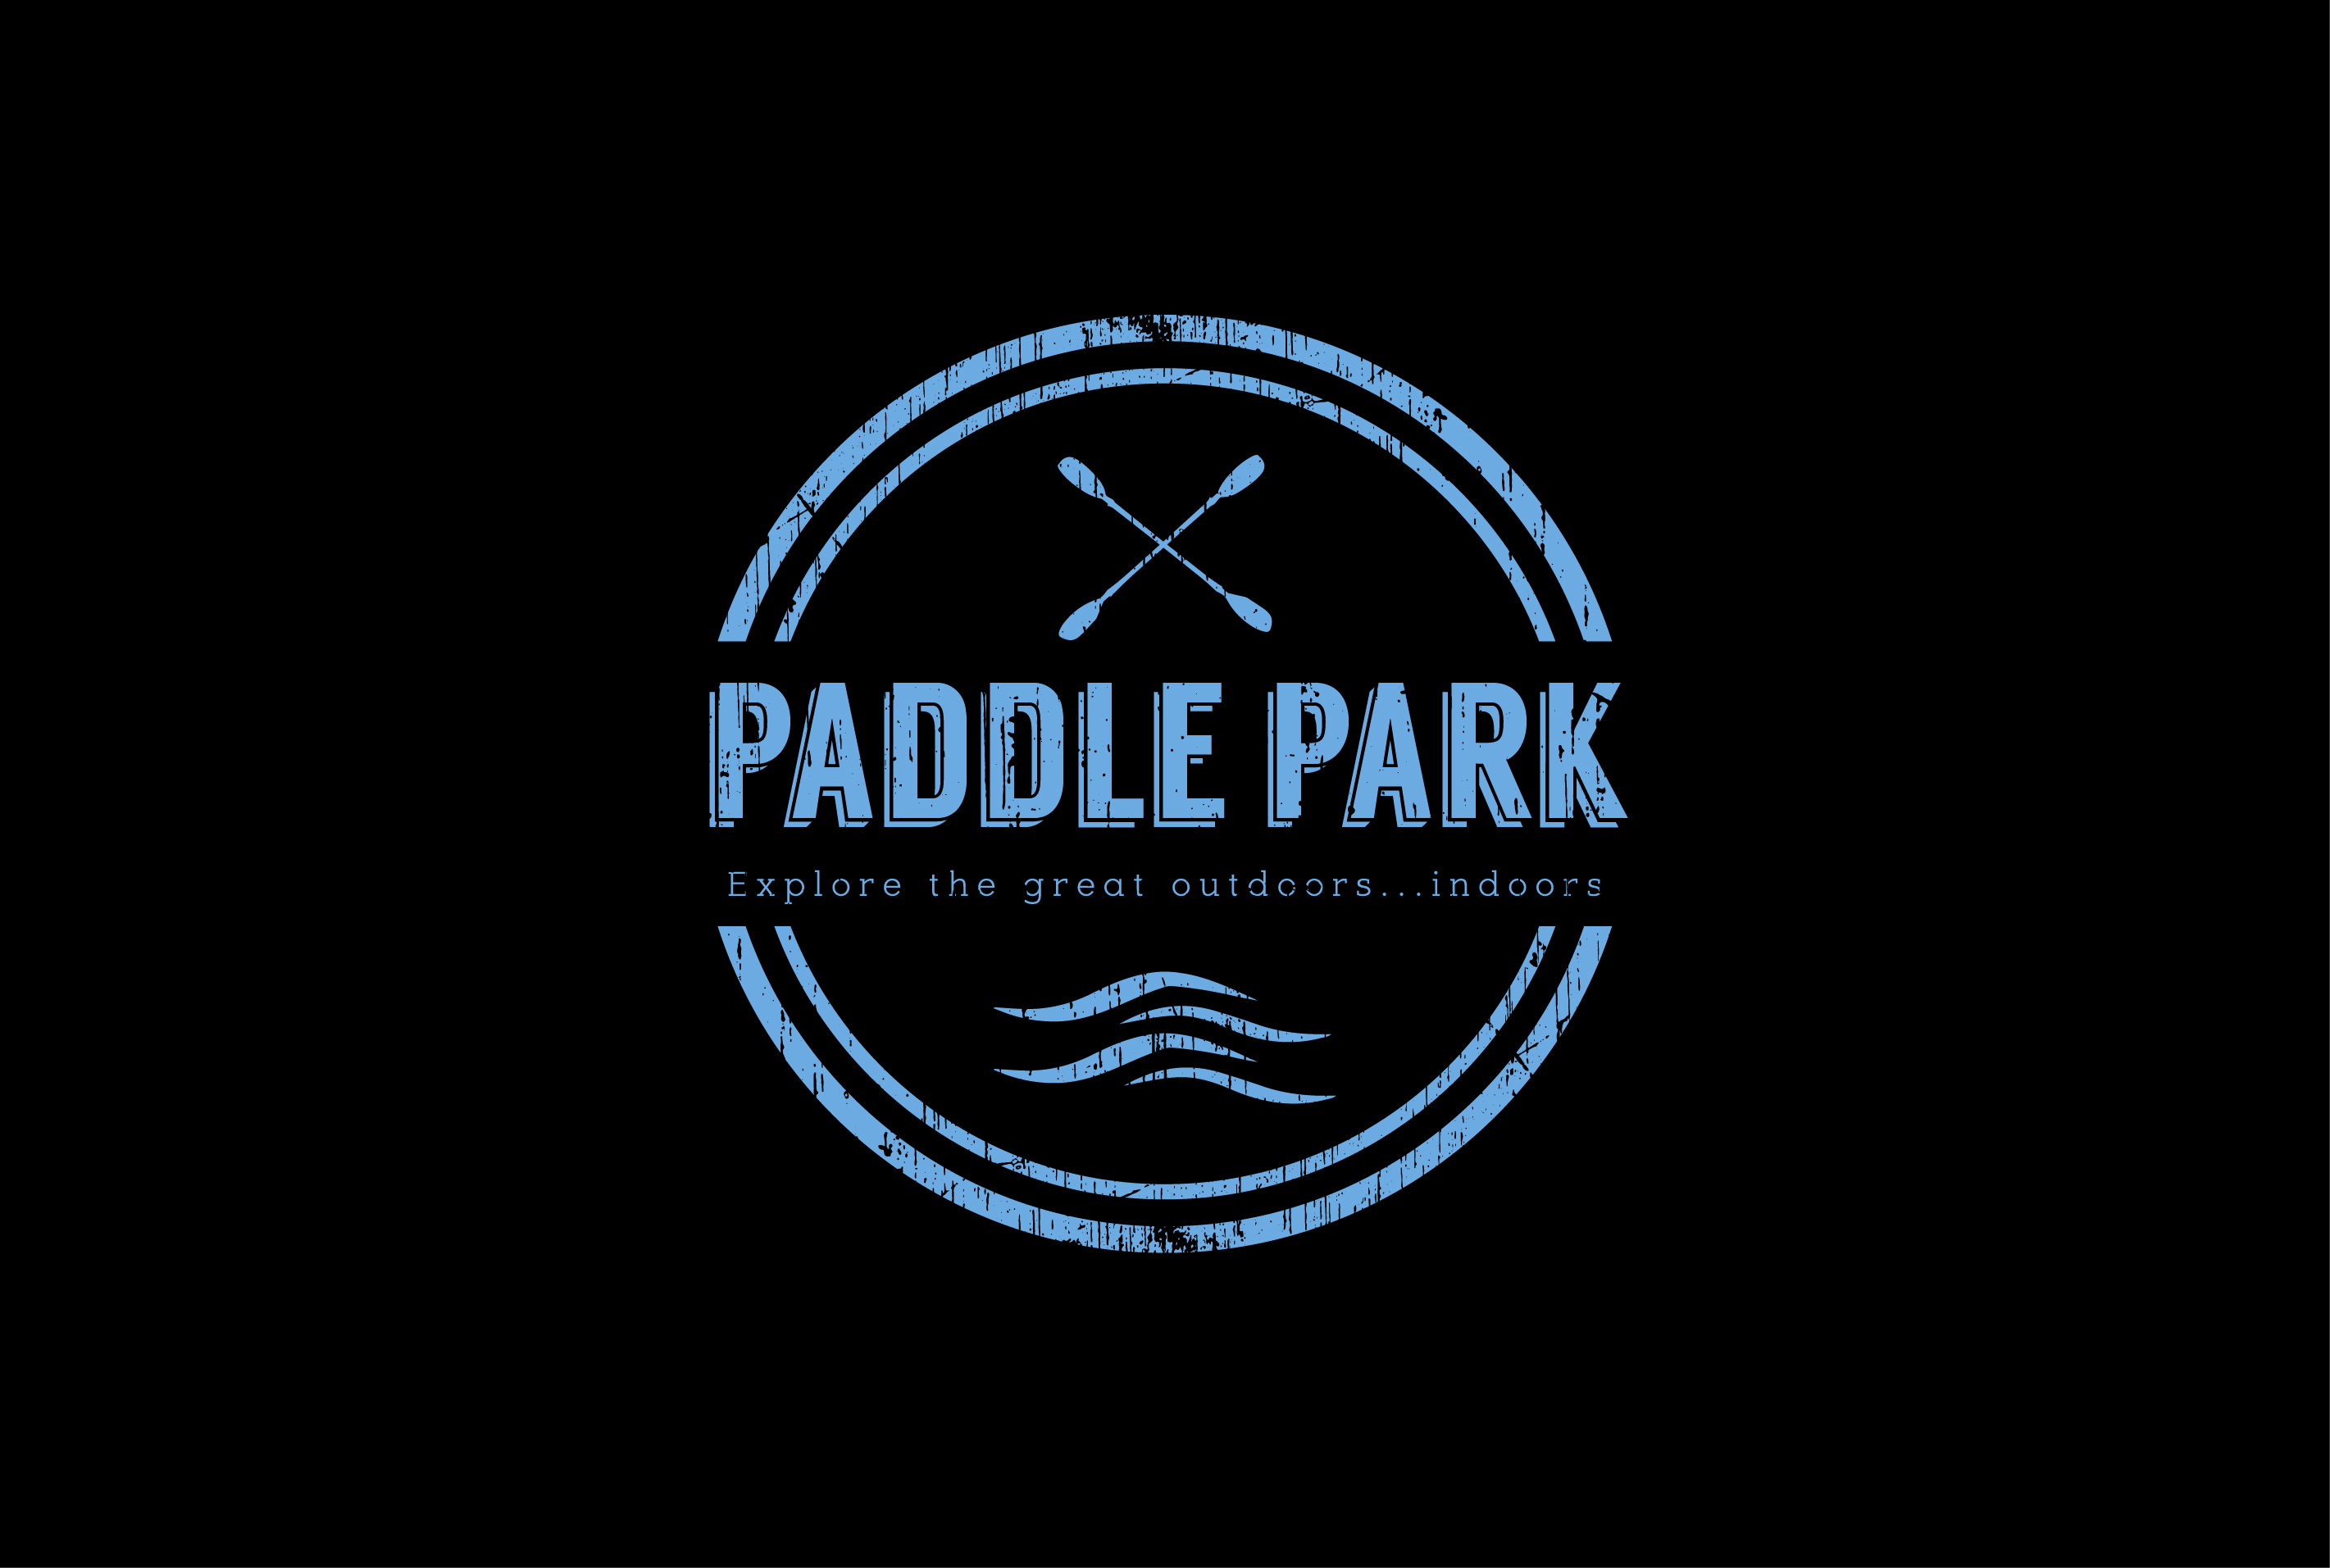 Paddle Park logo on black